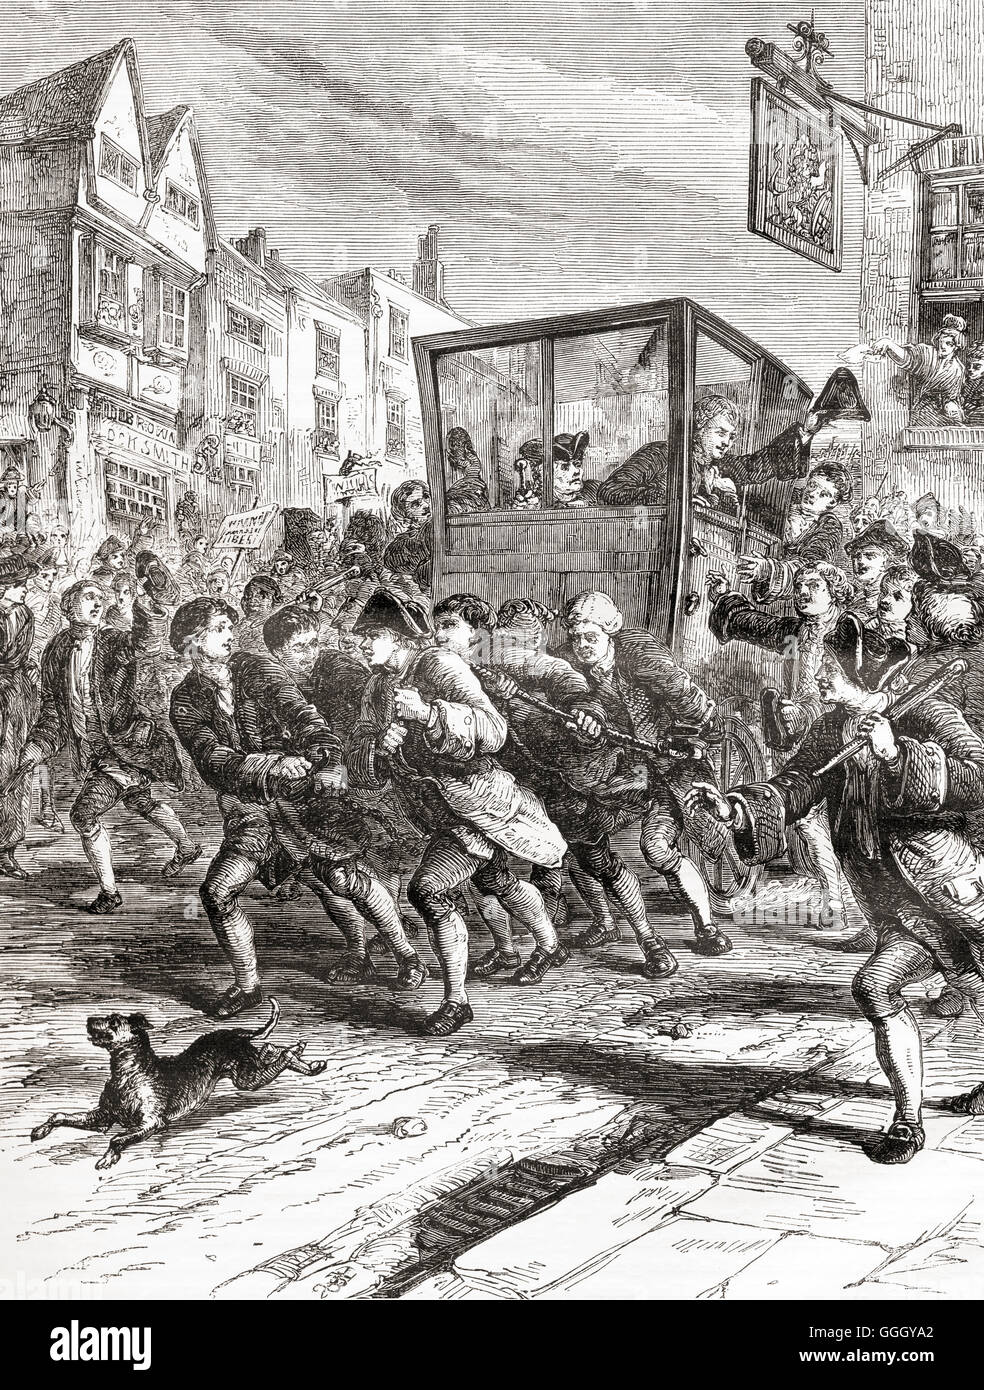 The triumphal entry of John Wilkes into the city of London after being elected member of parliament for Middlesex - Stock Image